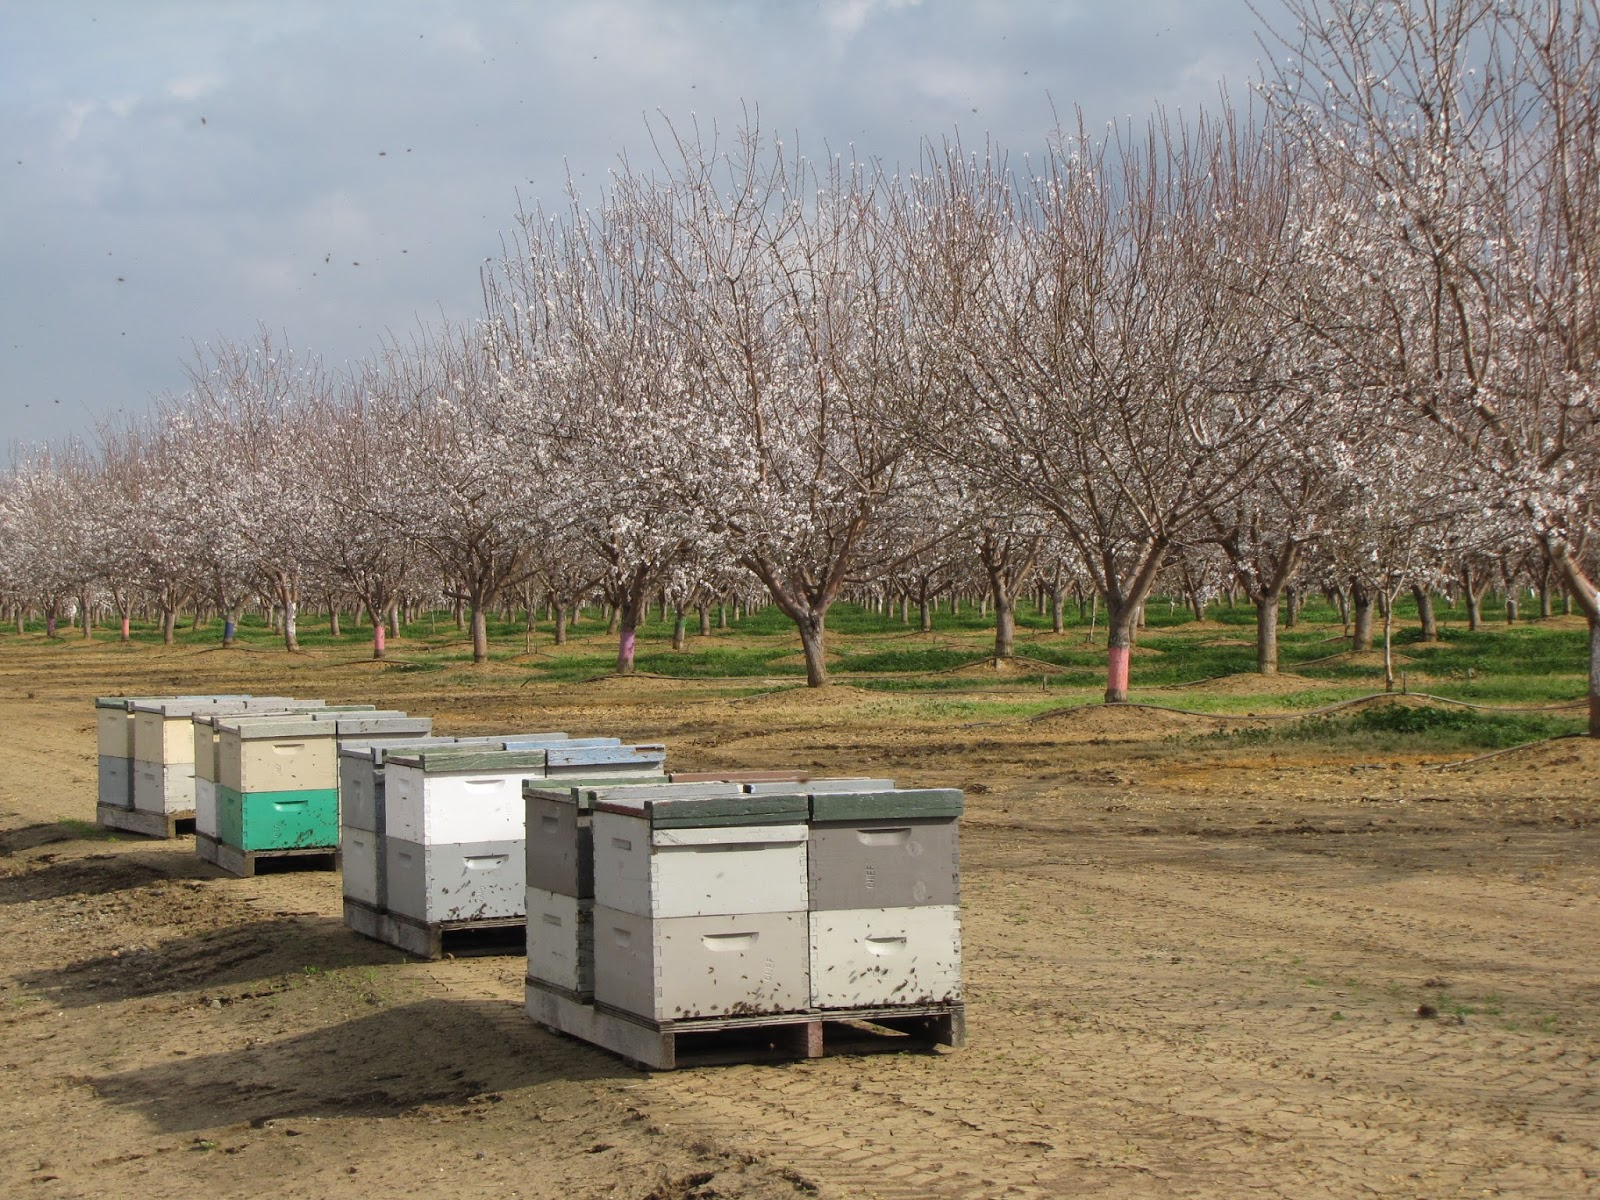 Hives Near Almonds For Pollination